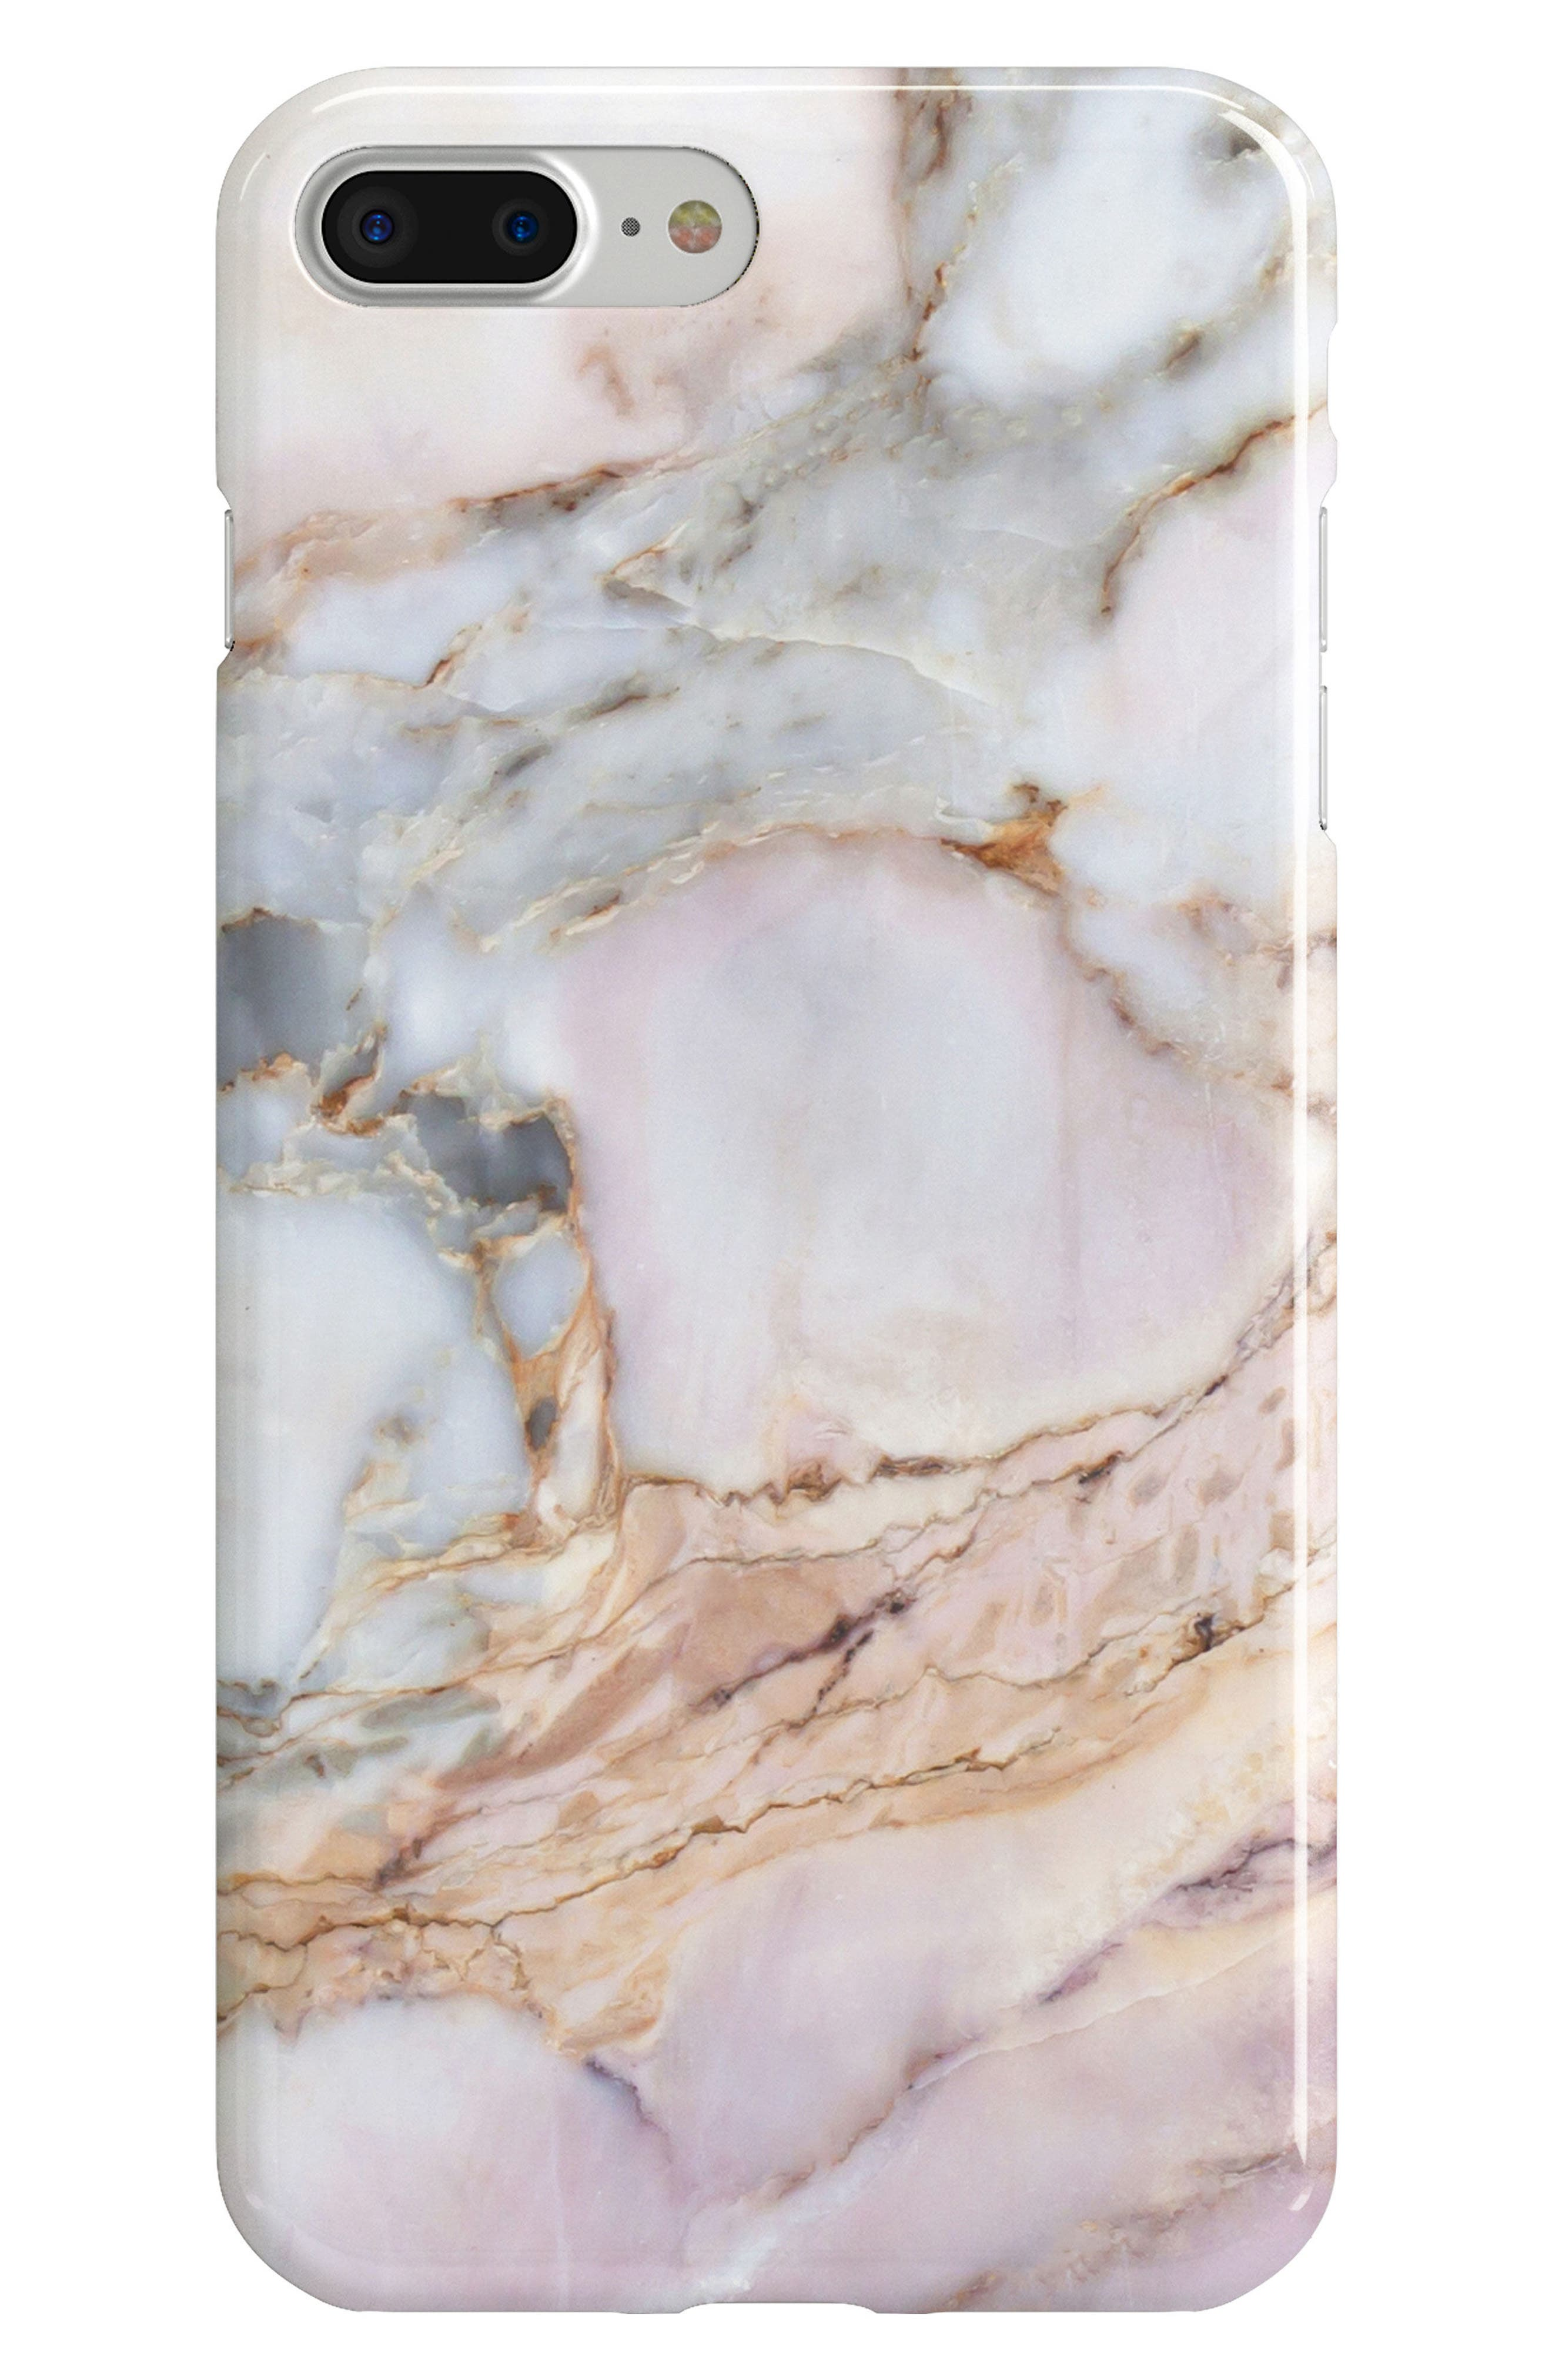 iphone 8 plus cell phone casesCool Iphone 8 Plus Cases Iphone 8 Plus Case Apple Custom Iphone 8 Plus Cases Wristlet Iphone Case Branded Iphone Cases Louis Vuitton #14